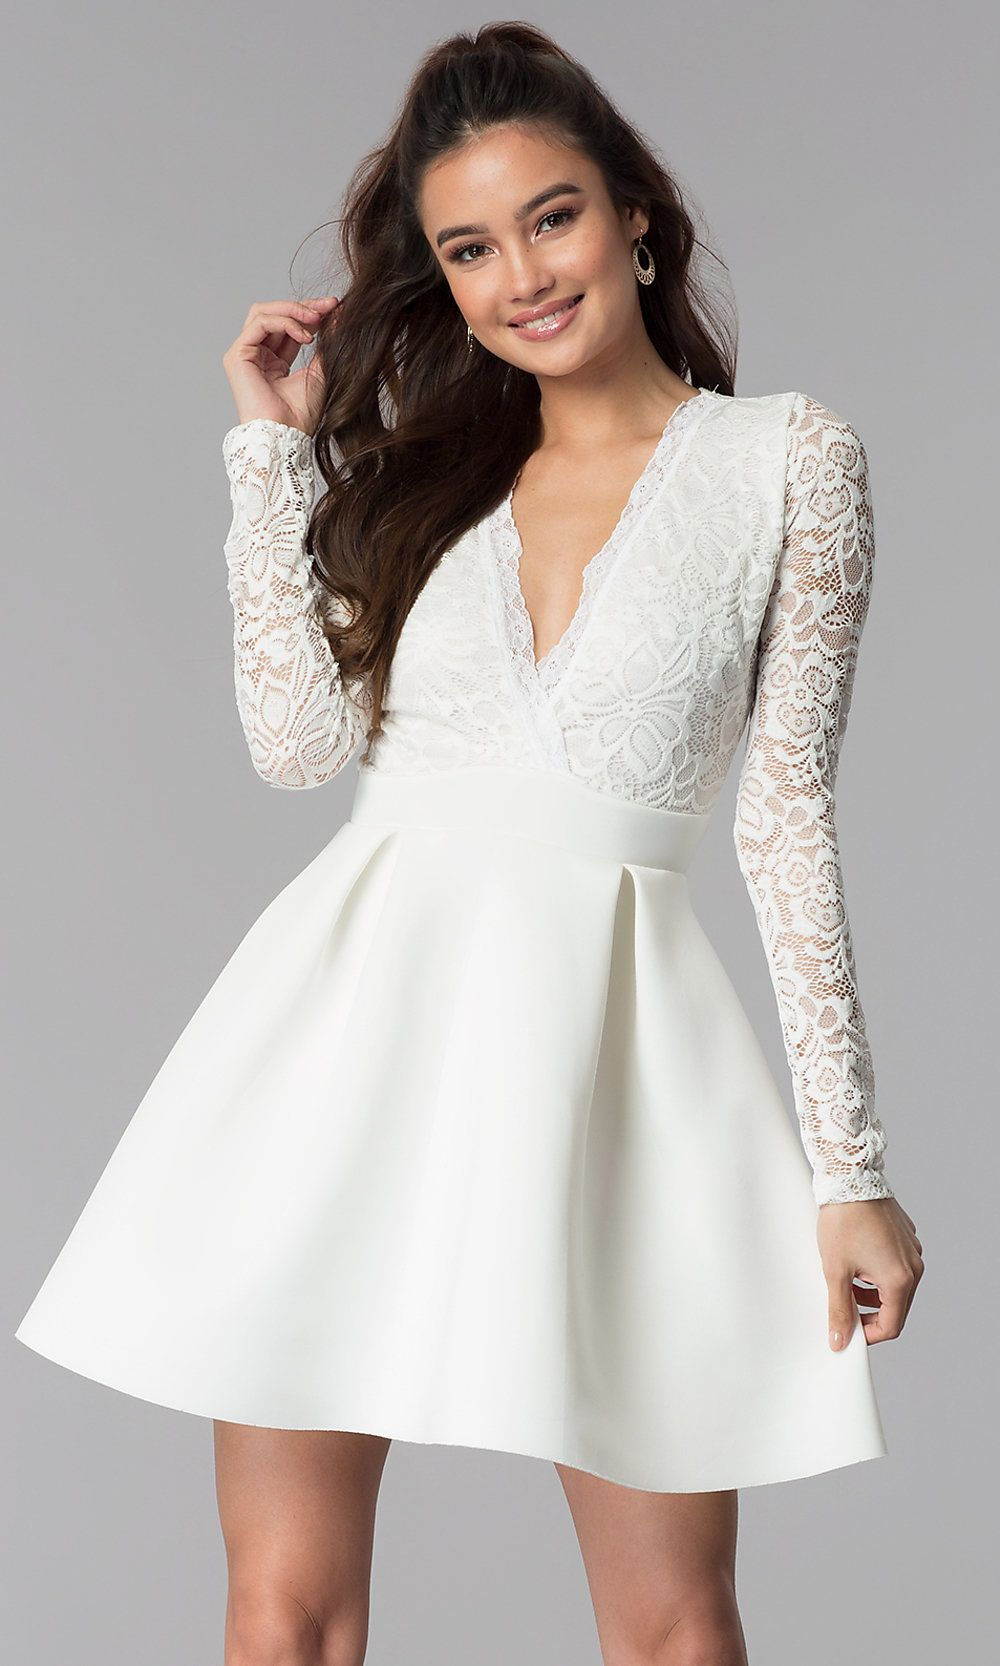 Short OpenBack LaceBodice Sleeved Party Dress in 2020